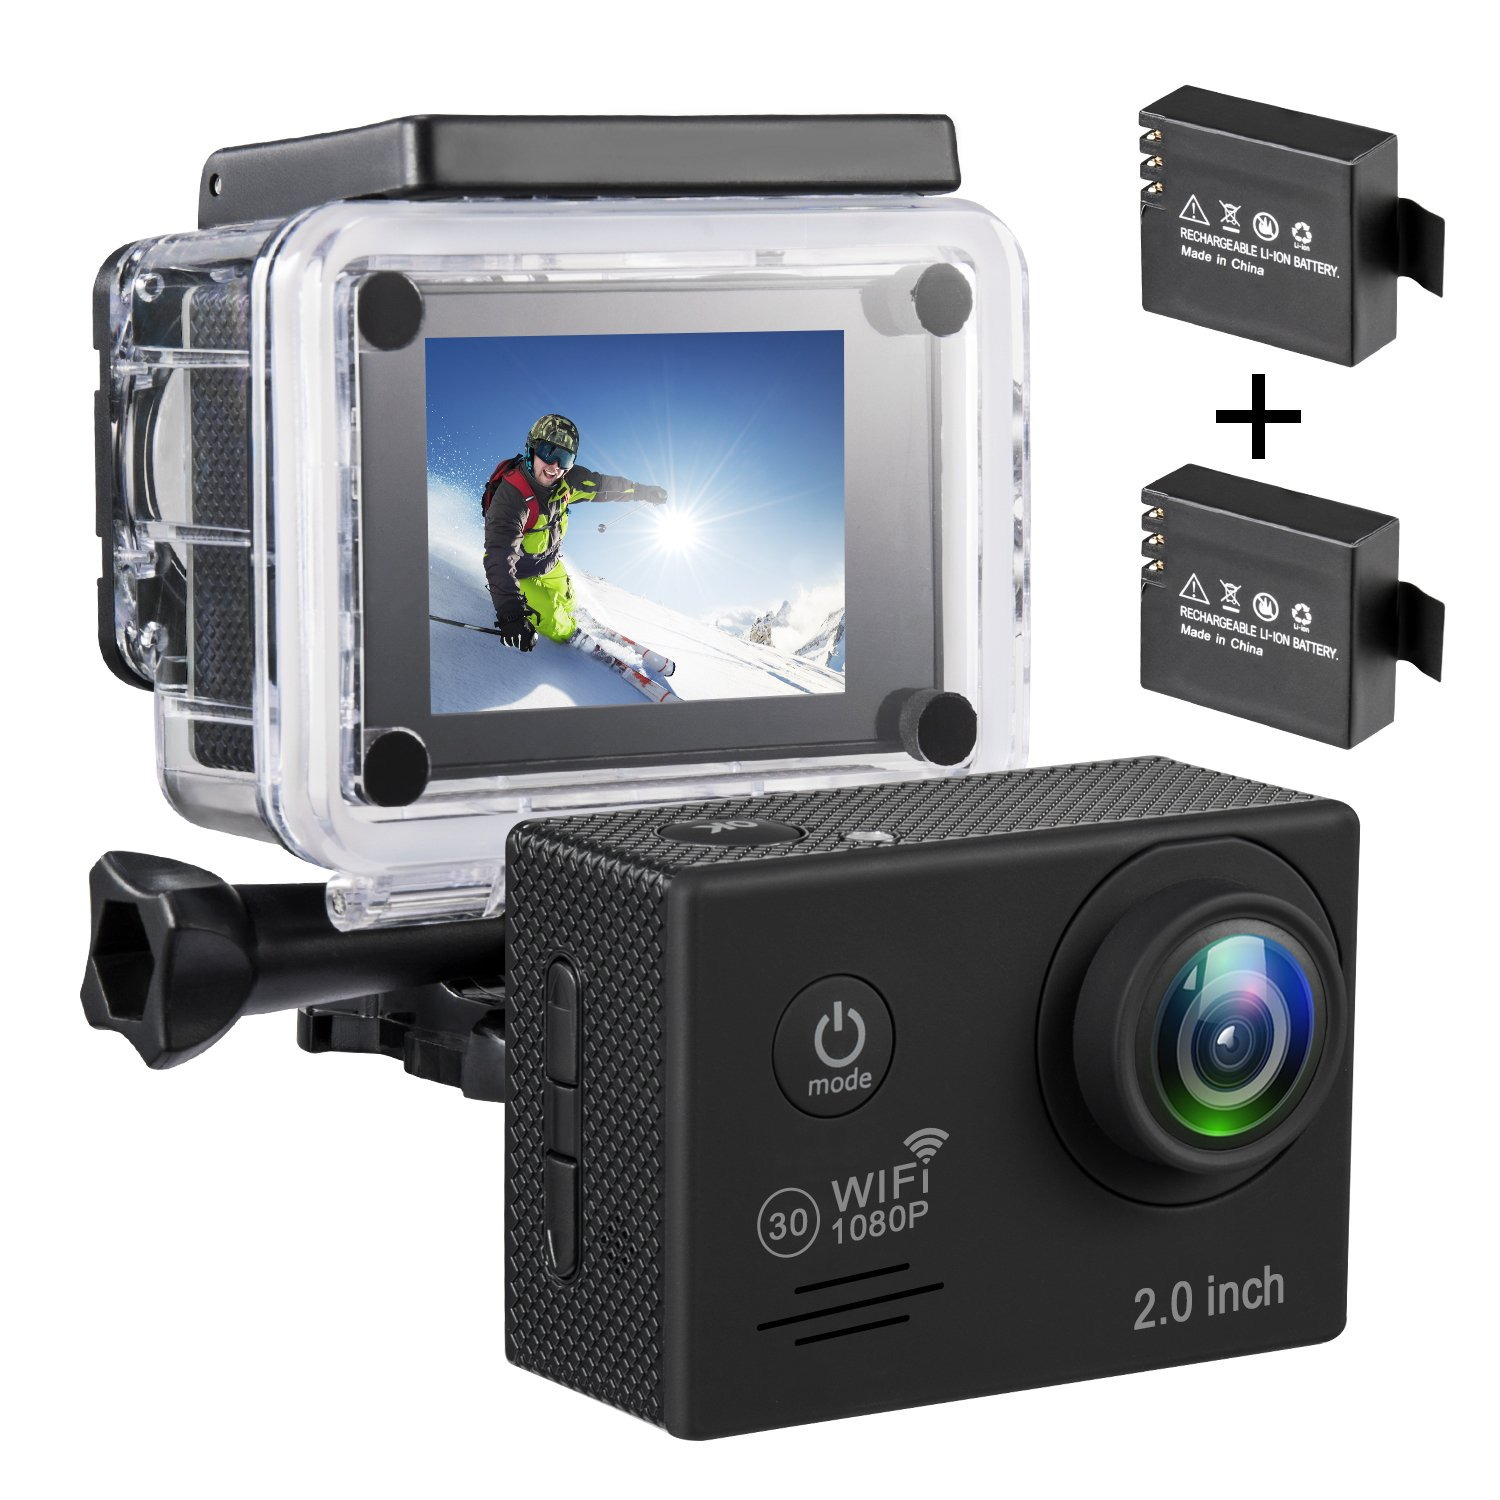 Wifi Action Camera 1080P Full Ultra HD Waterproof Sports Camera 2.0 Inch LCD Screen DV Camcorder with 2 Rechargeable Batteries (No Includes SD card)